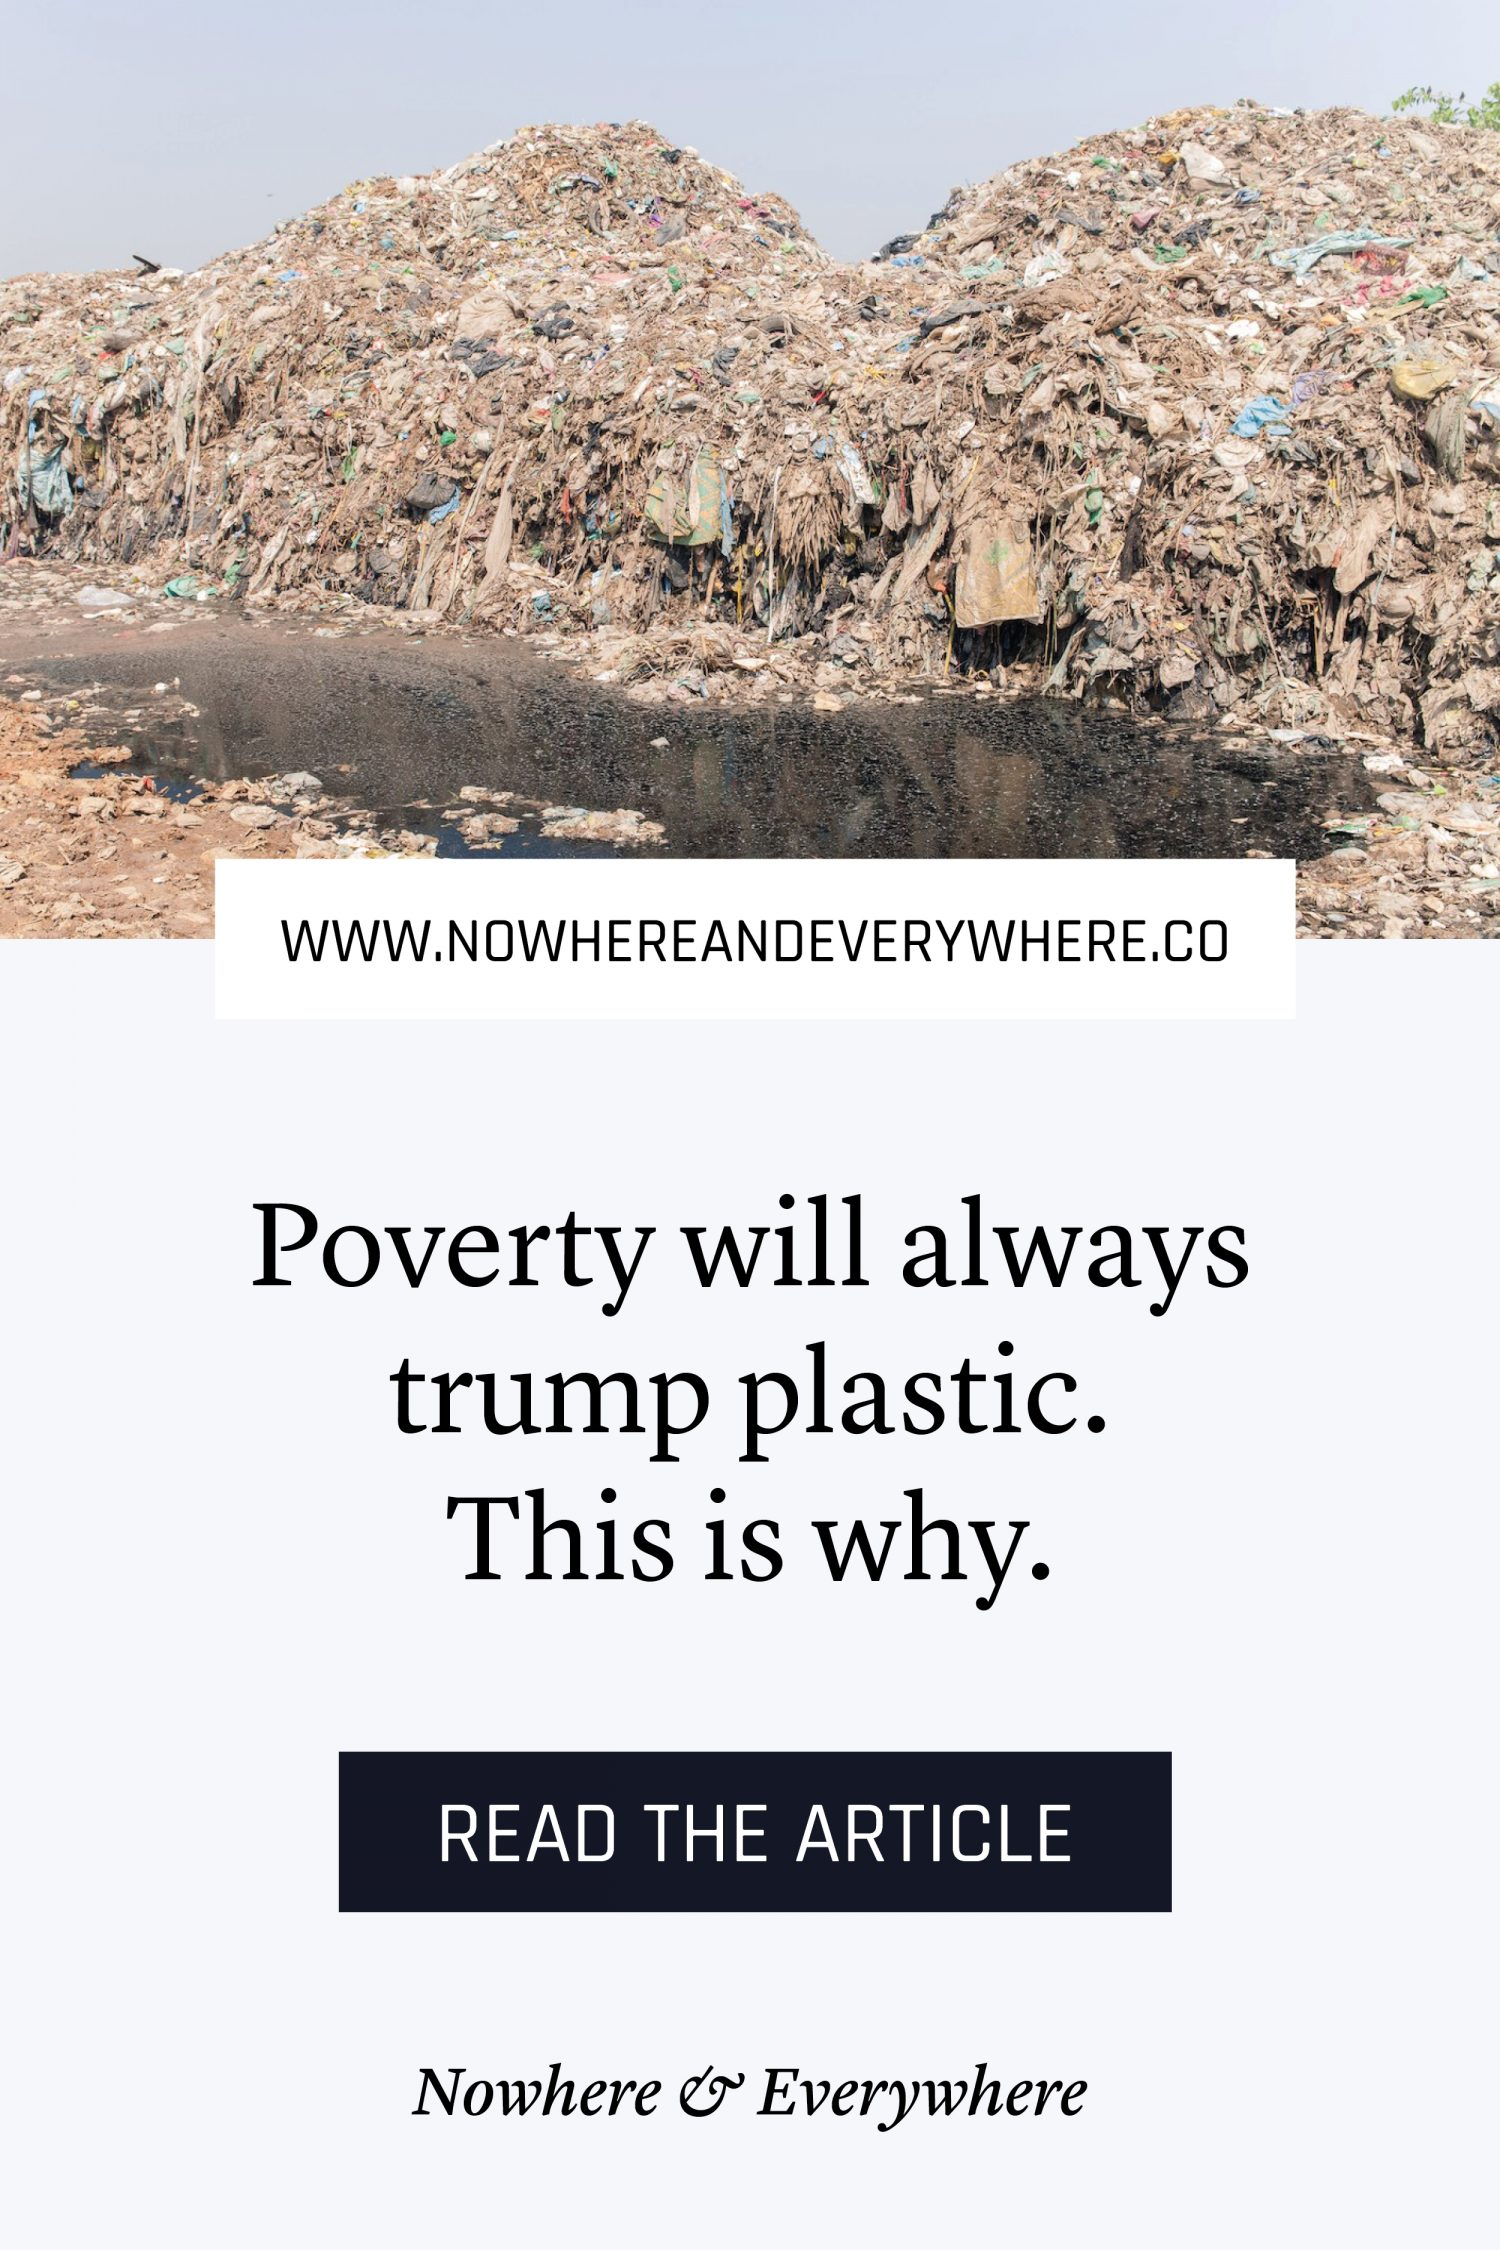 Poverty trumps plastic - on colonialism, environmental racism and justice - Nowhere & Everywhere - Environmentalism Plastic Pollution Cambodia